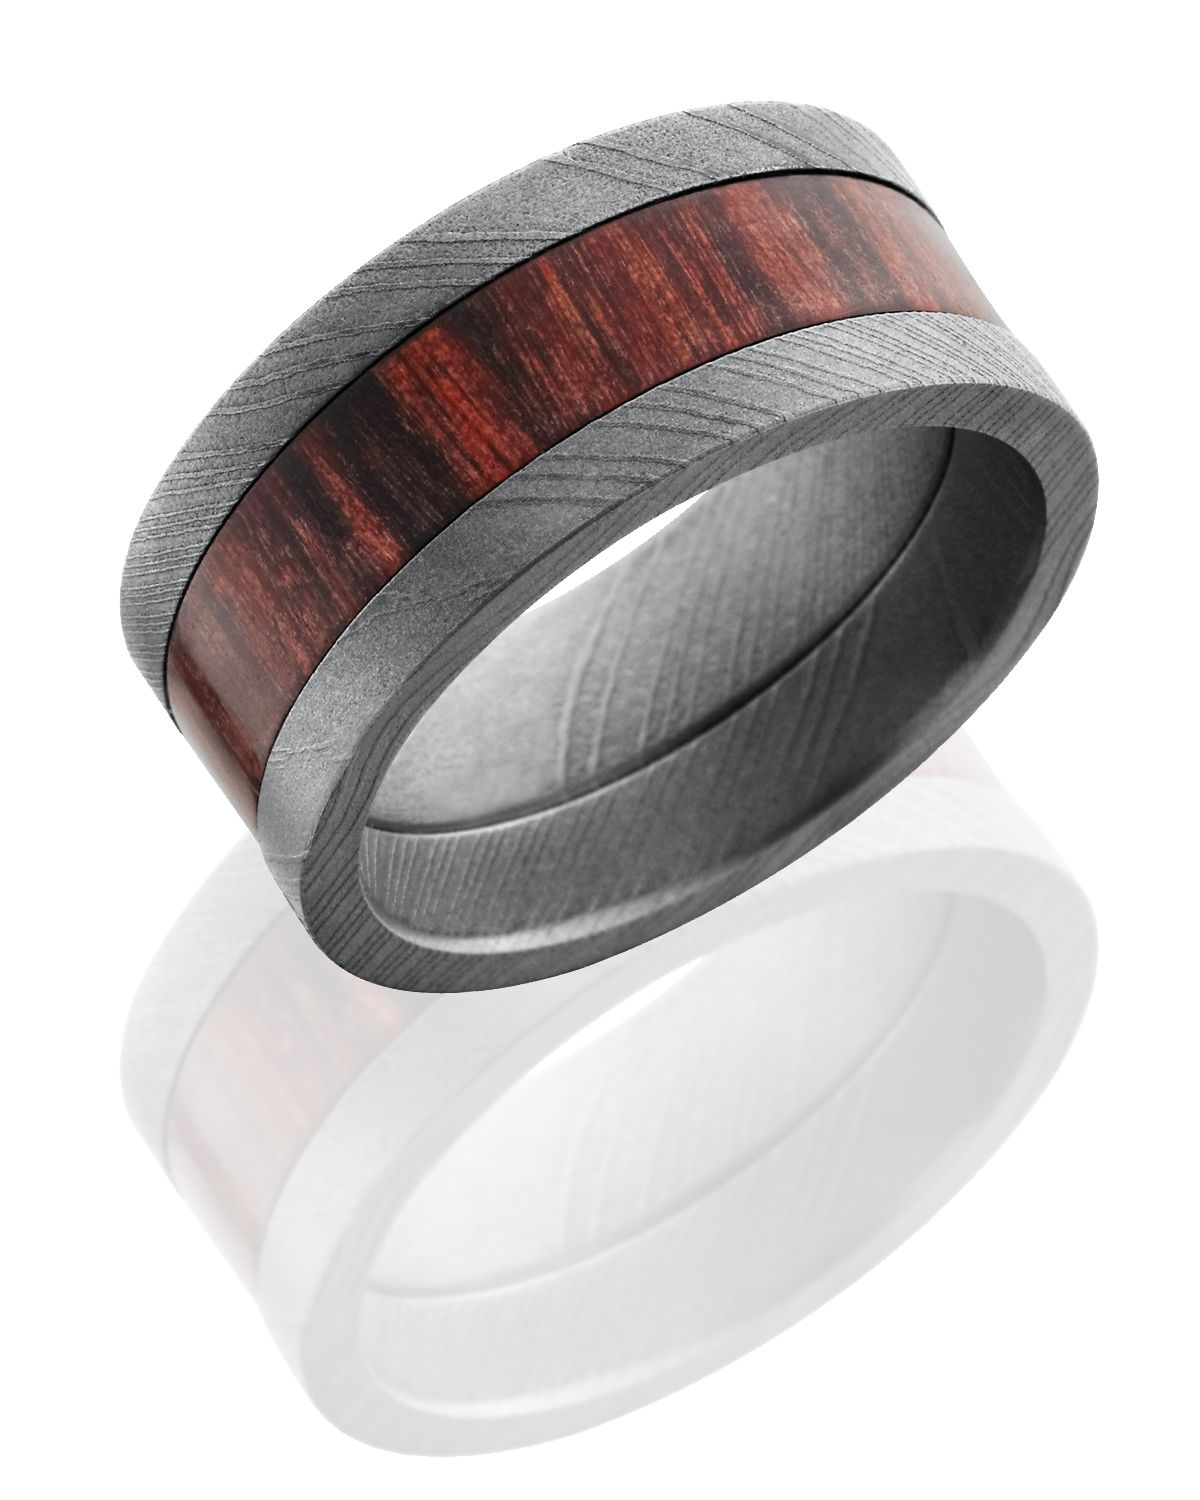 damascus steel wedding bands damascus steel wedding bands 17 Best Images About Beauty Of Damascus On Pinterest Damascus Steel Knife Making And Straight Razor damascus steel ring wedding